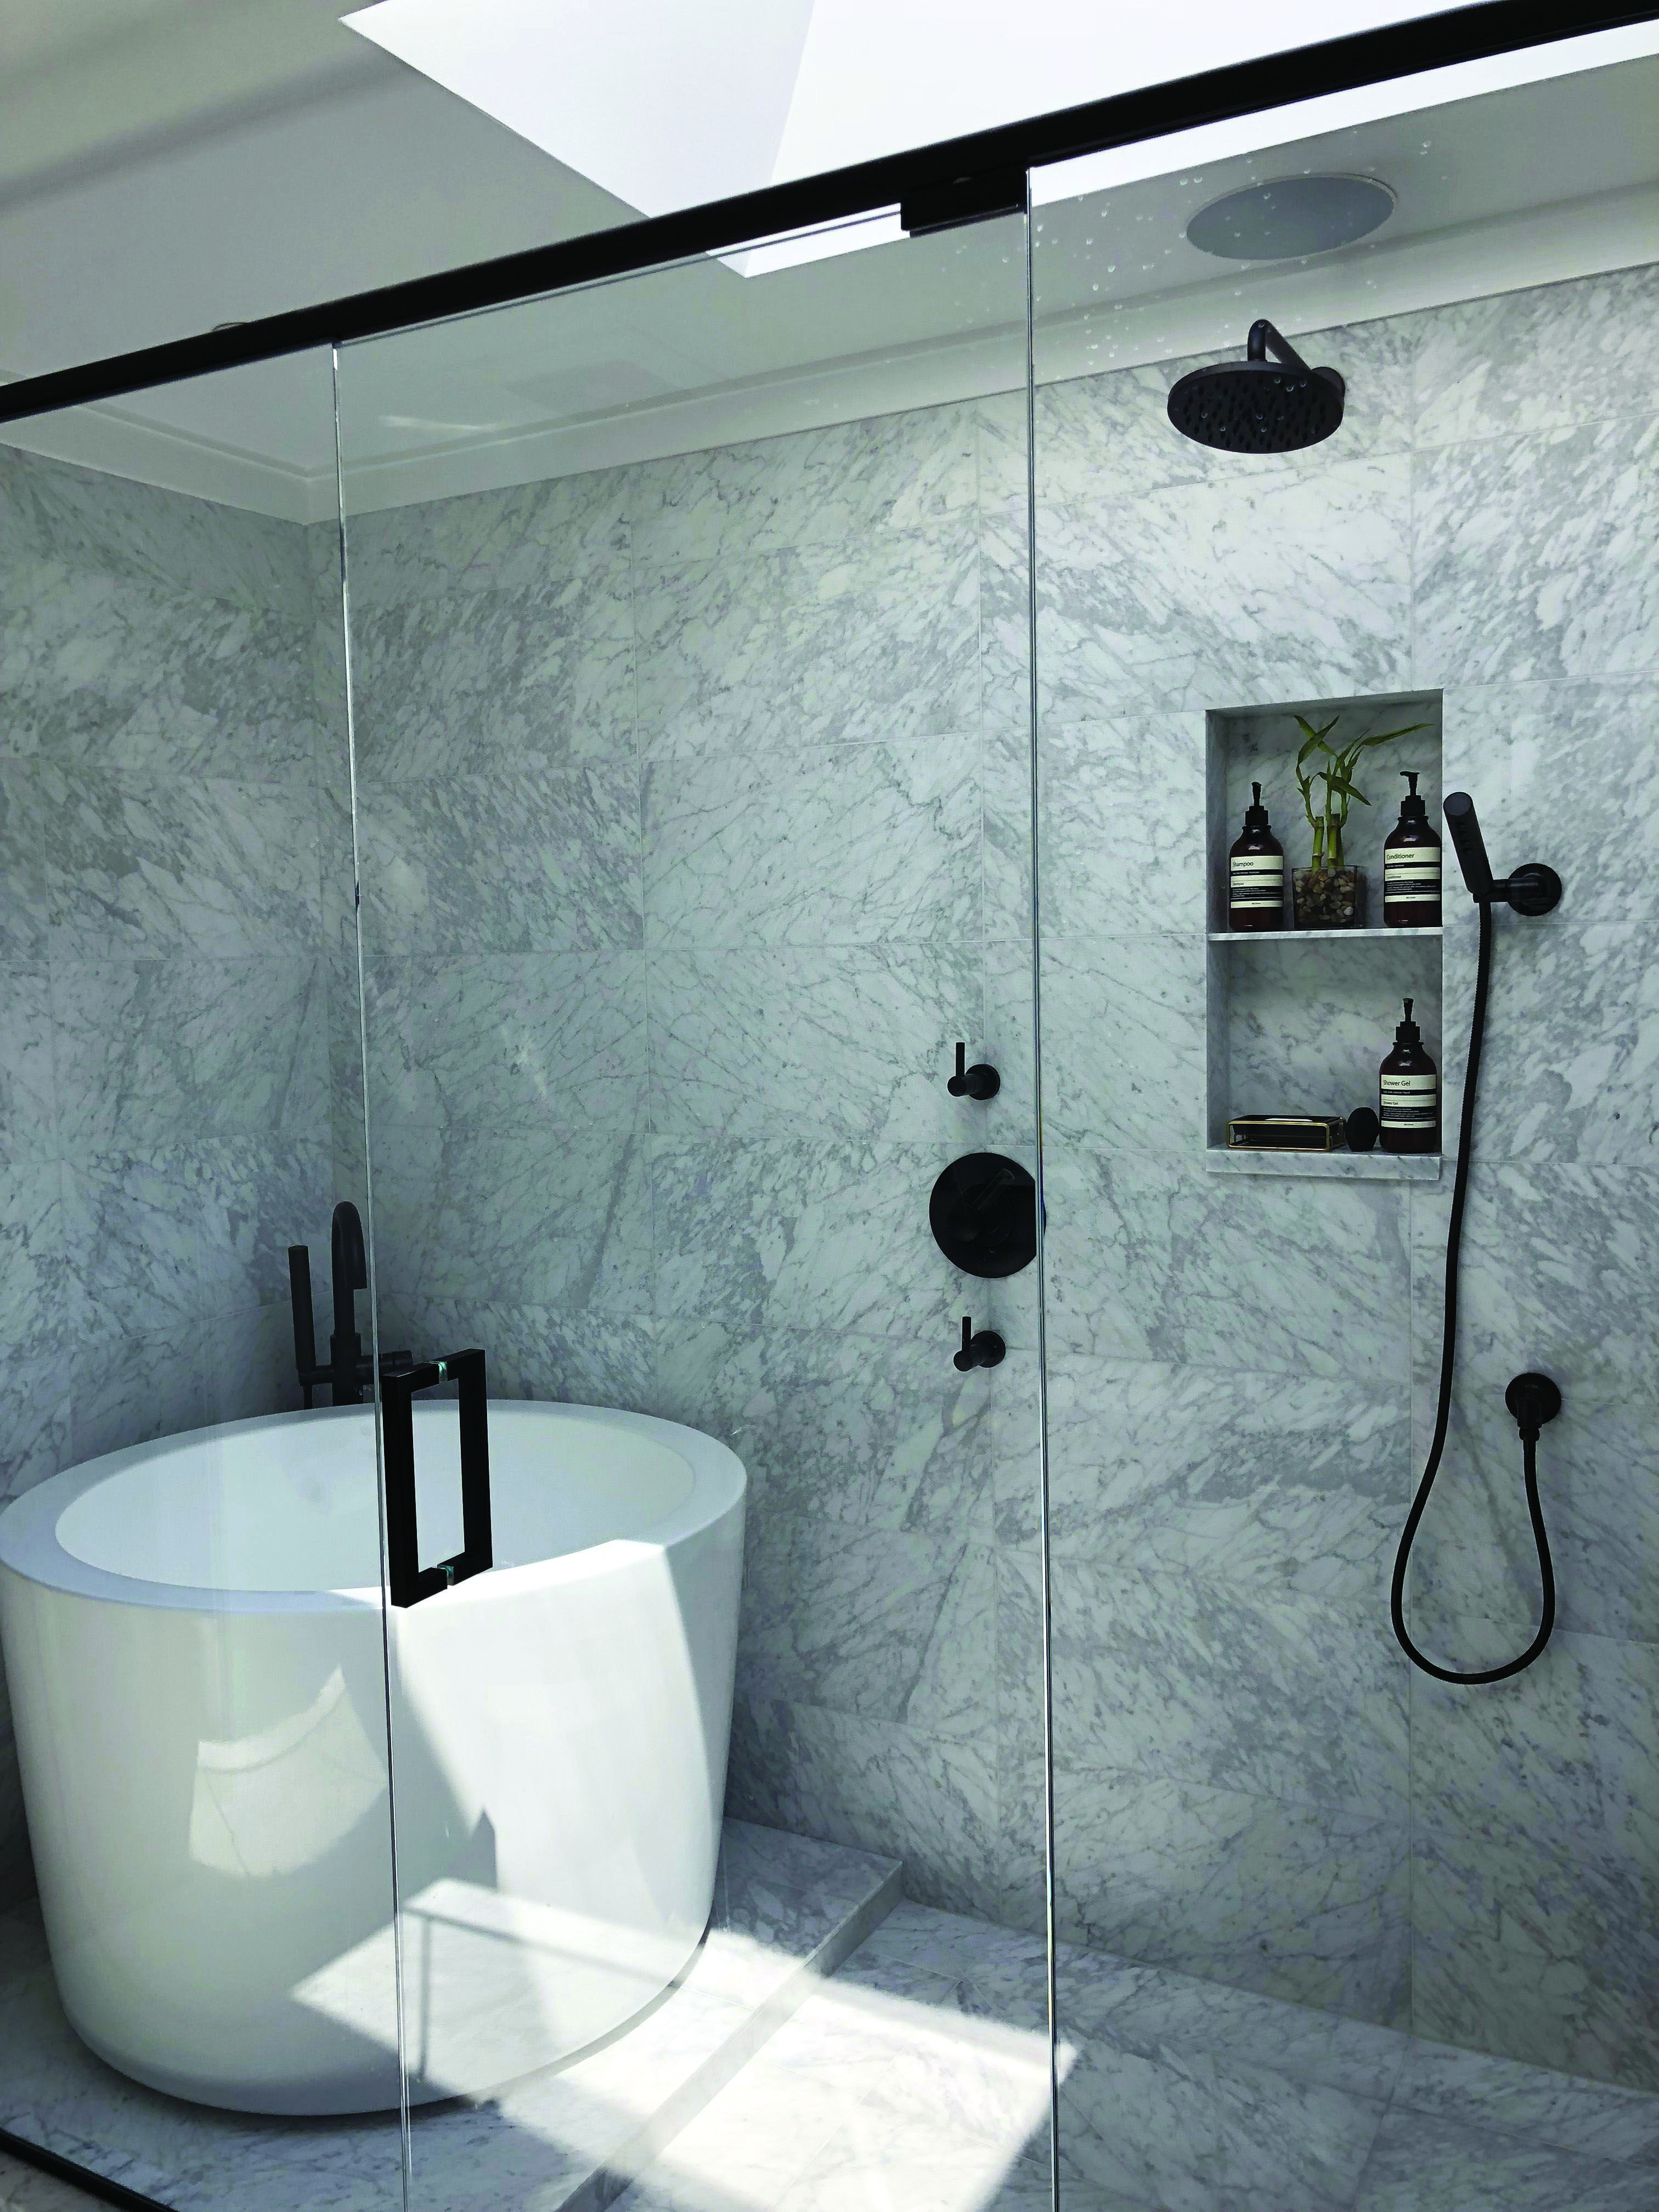 Beautiful Best 5 Foot Soaker Tub To Inspire You Bathroom Tub Shower Combo Bathroom Tub Shower Soaking Tub Shower Combo